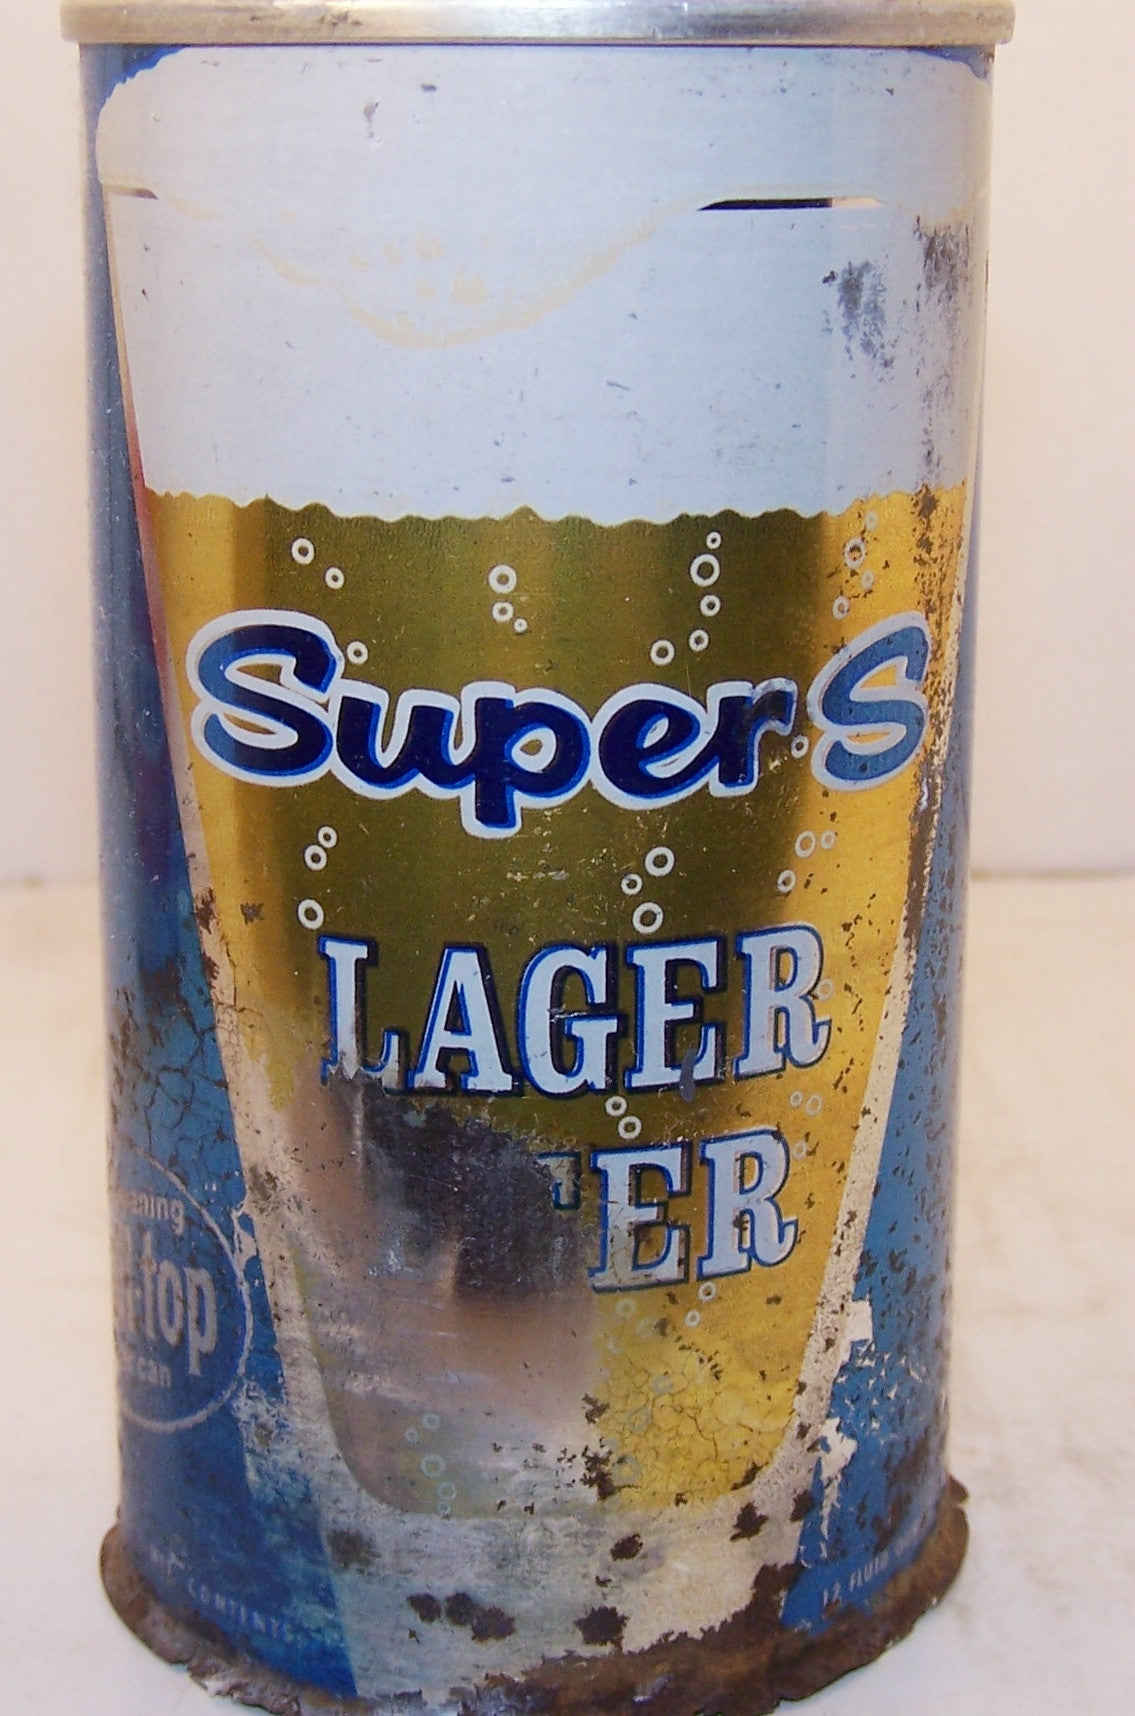 Super S lager Beer, zip intact, Grade 2- Sold 11/20/14